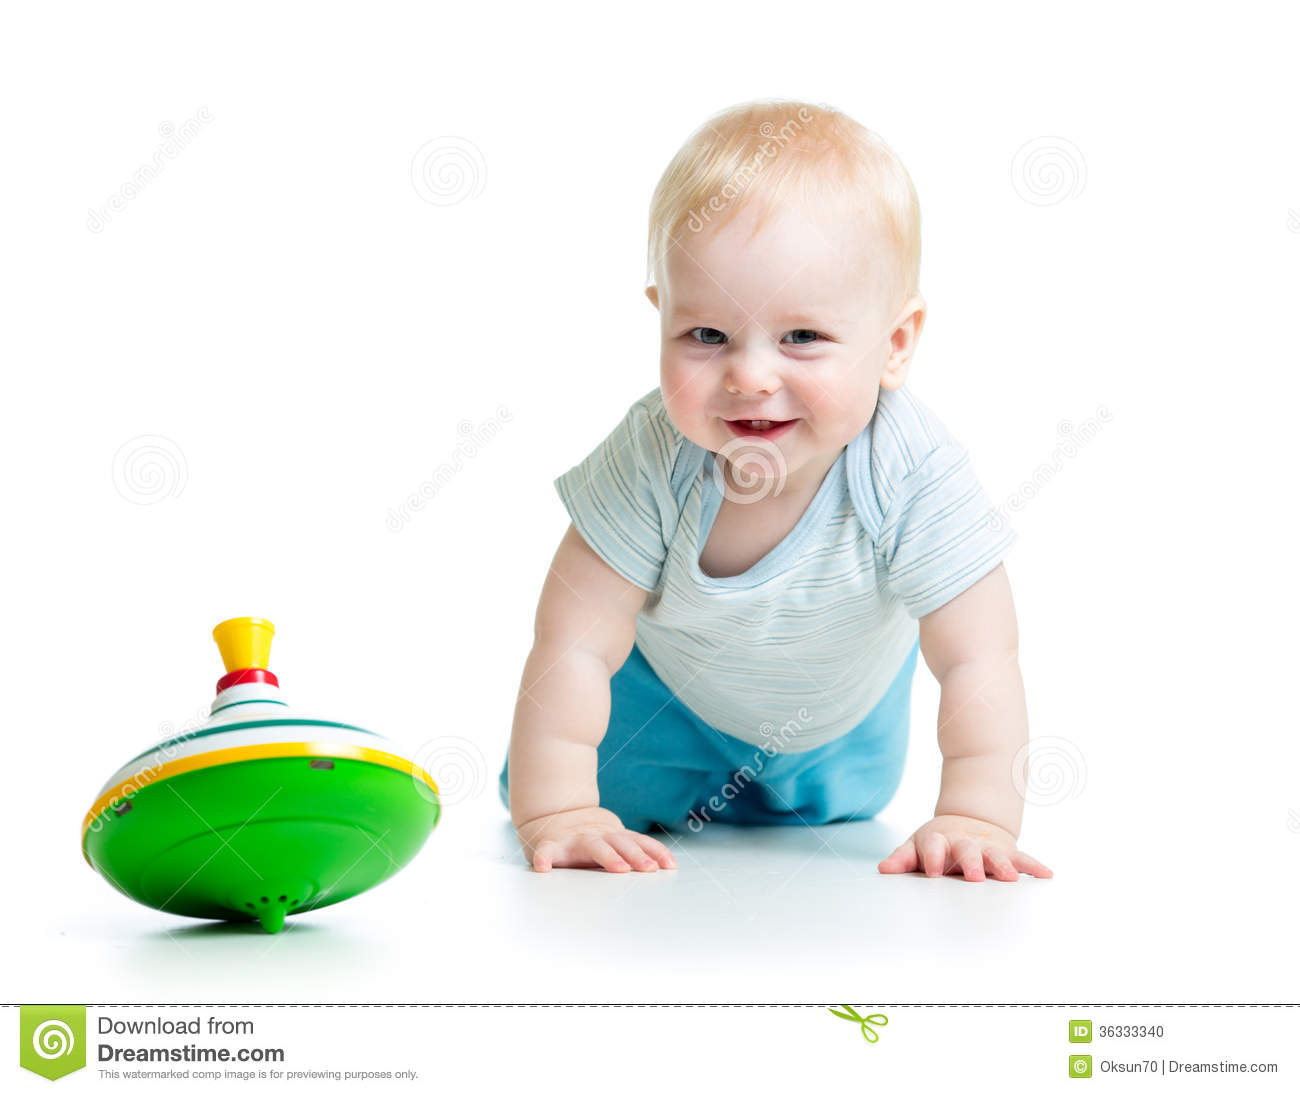 Bebe 7 Meses Y Medio Baby Playing With Toy Whirligig Stock Photo Image Of